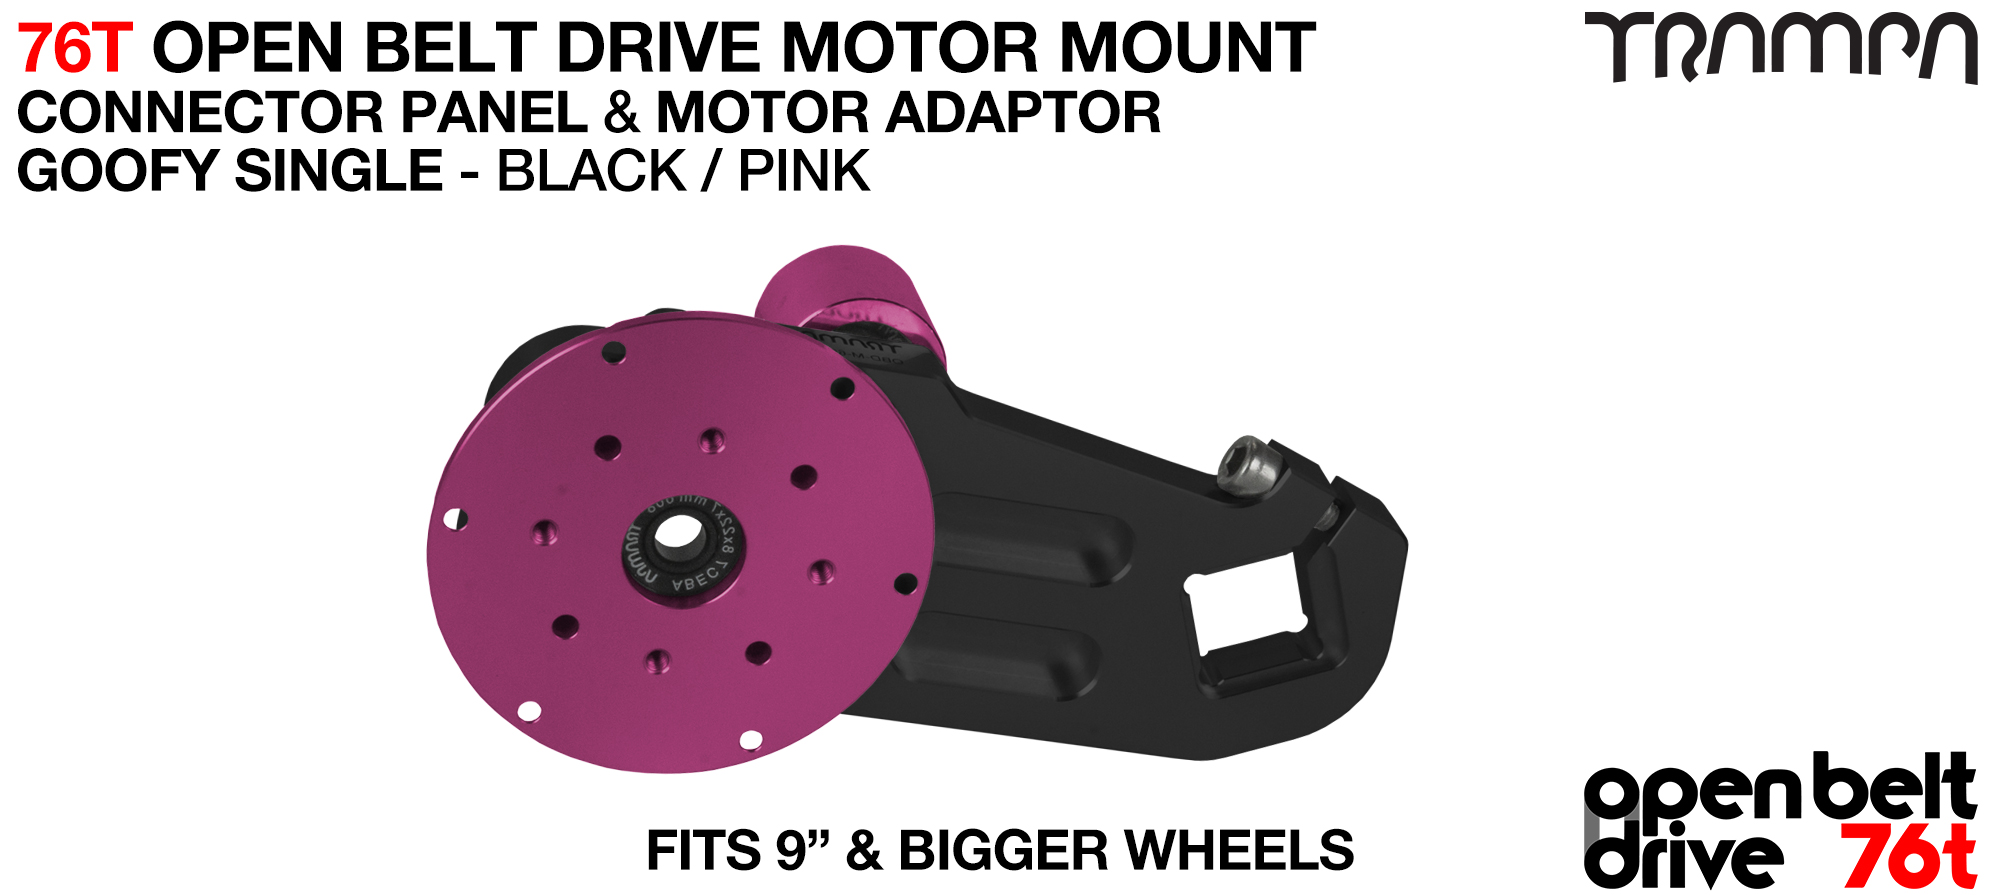 76T Open Belt Drive Motor Mount & Motor Adaptor - SINGLE PINK